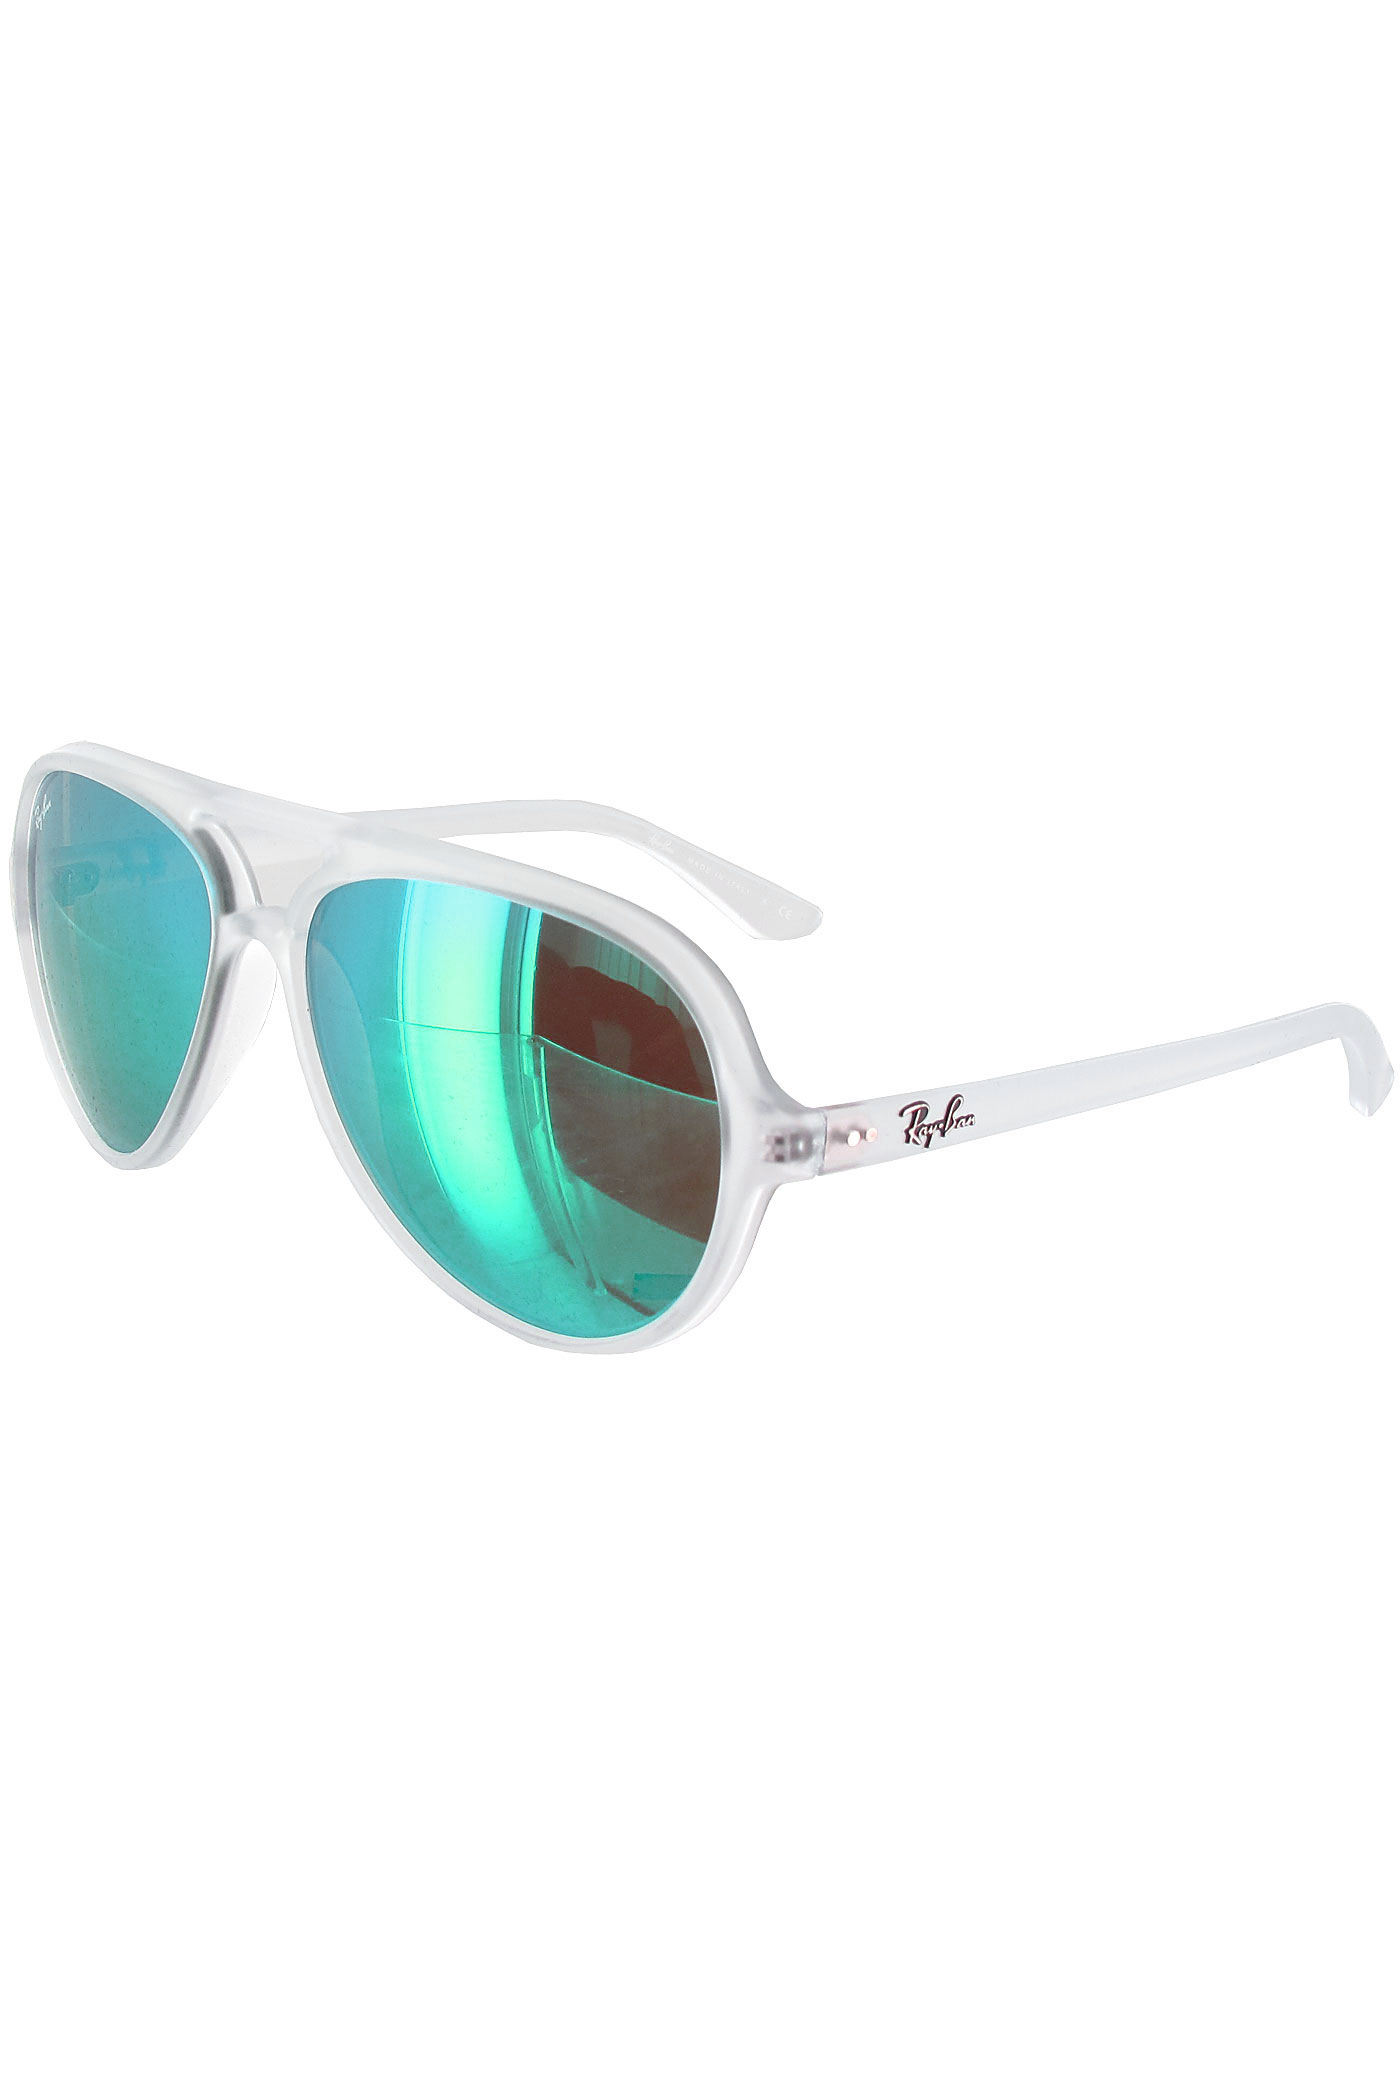 79277d2d7a9 Ray Ban Cat 5000 Sale « Heritage Malta